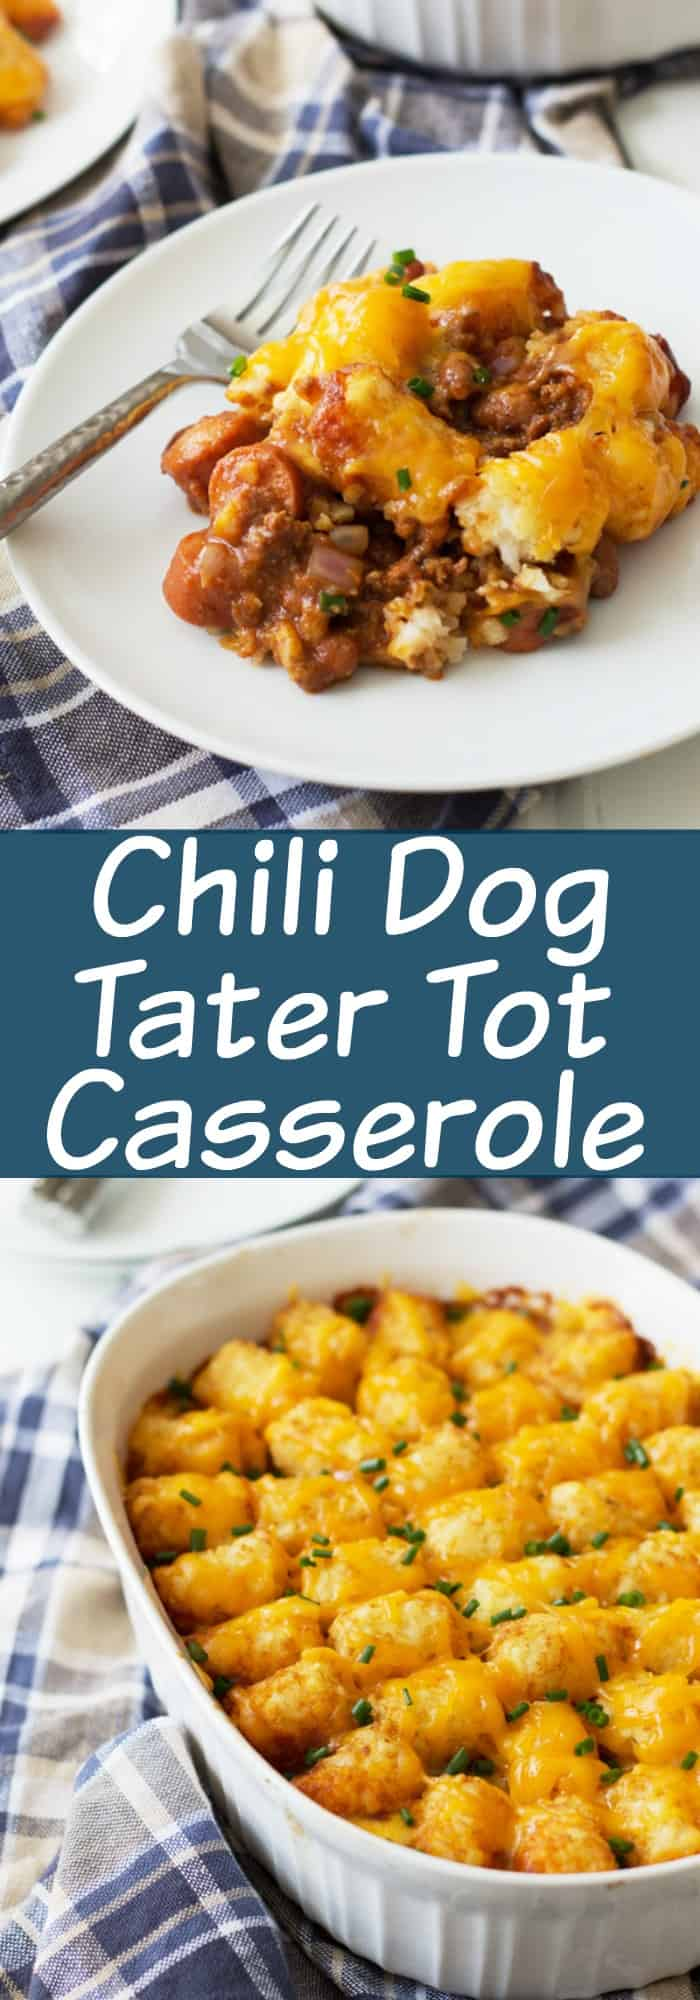 Chili Dog Tater Tot Casserole is a twist on a family favorite recipe. Chili, cheese, hot dogs, tater tots....need I say more?!?! | www.countrysidecravings.com